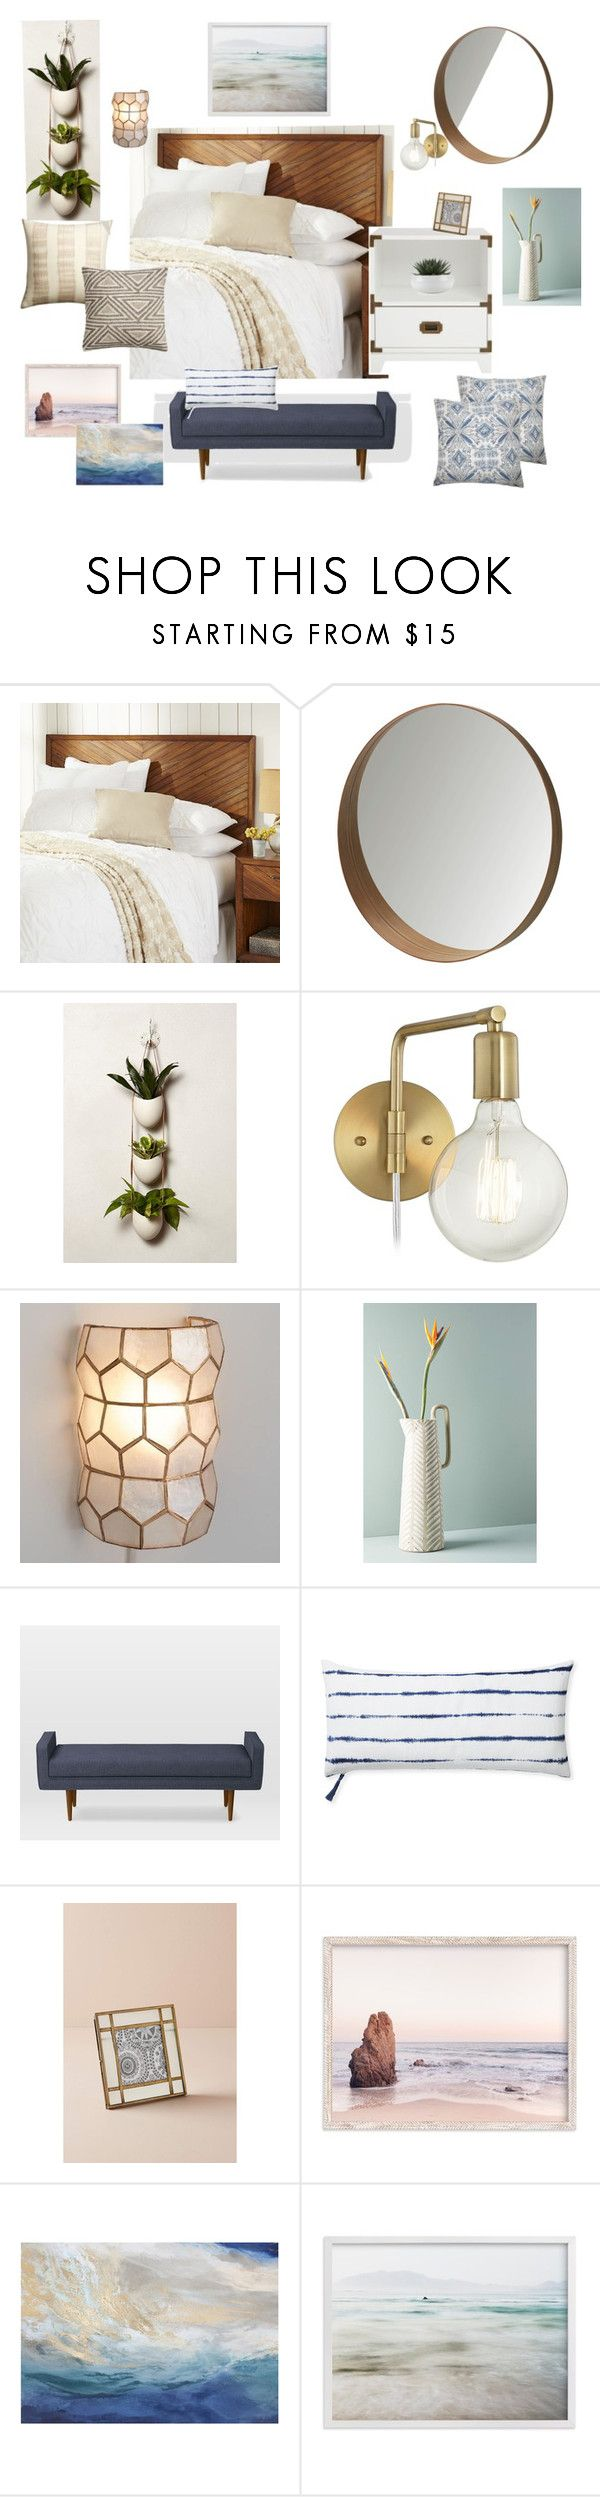 """""""Corte Madera Master 2"""" by noelkvis on Polyvore featuring interior, interiors, interior design, home, home decor, interior decorating, Pier 1 Imports, Light + Ladder, Anthropologie and Serena & Lily"""